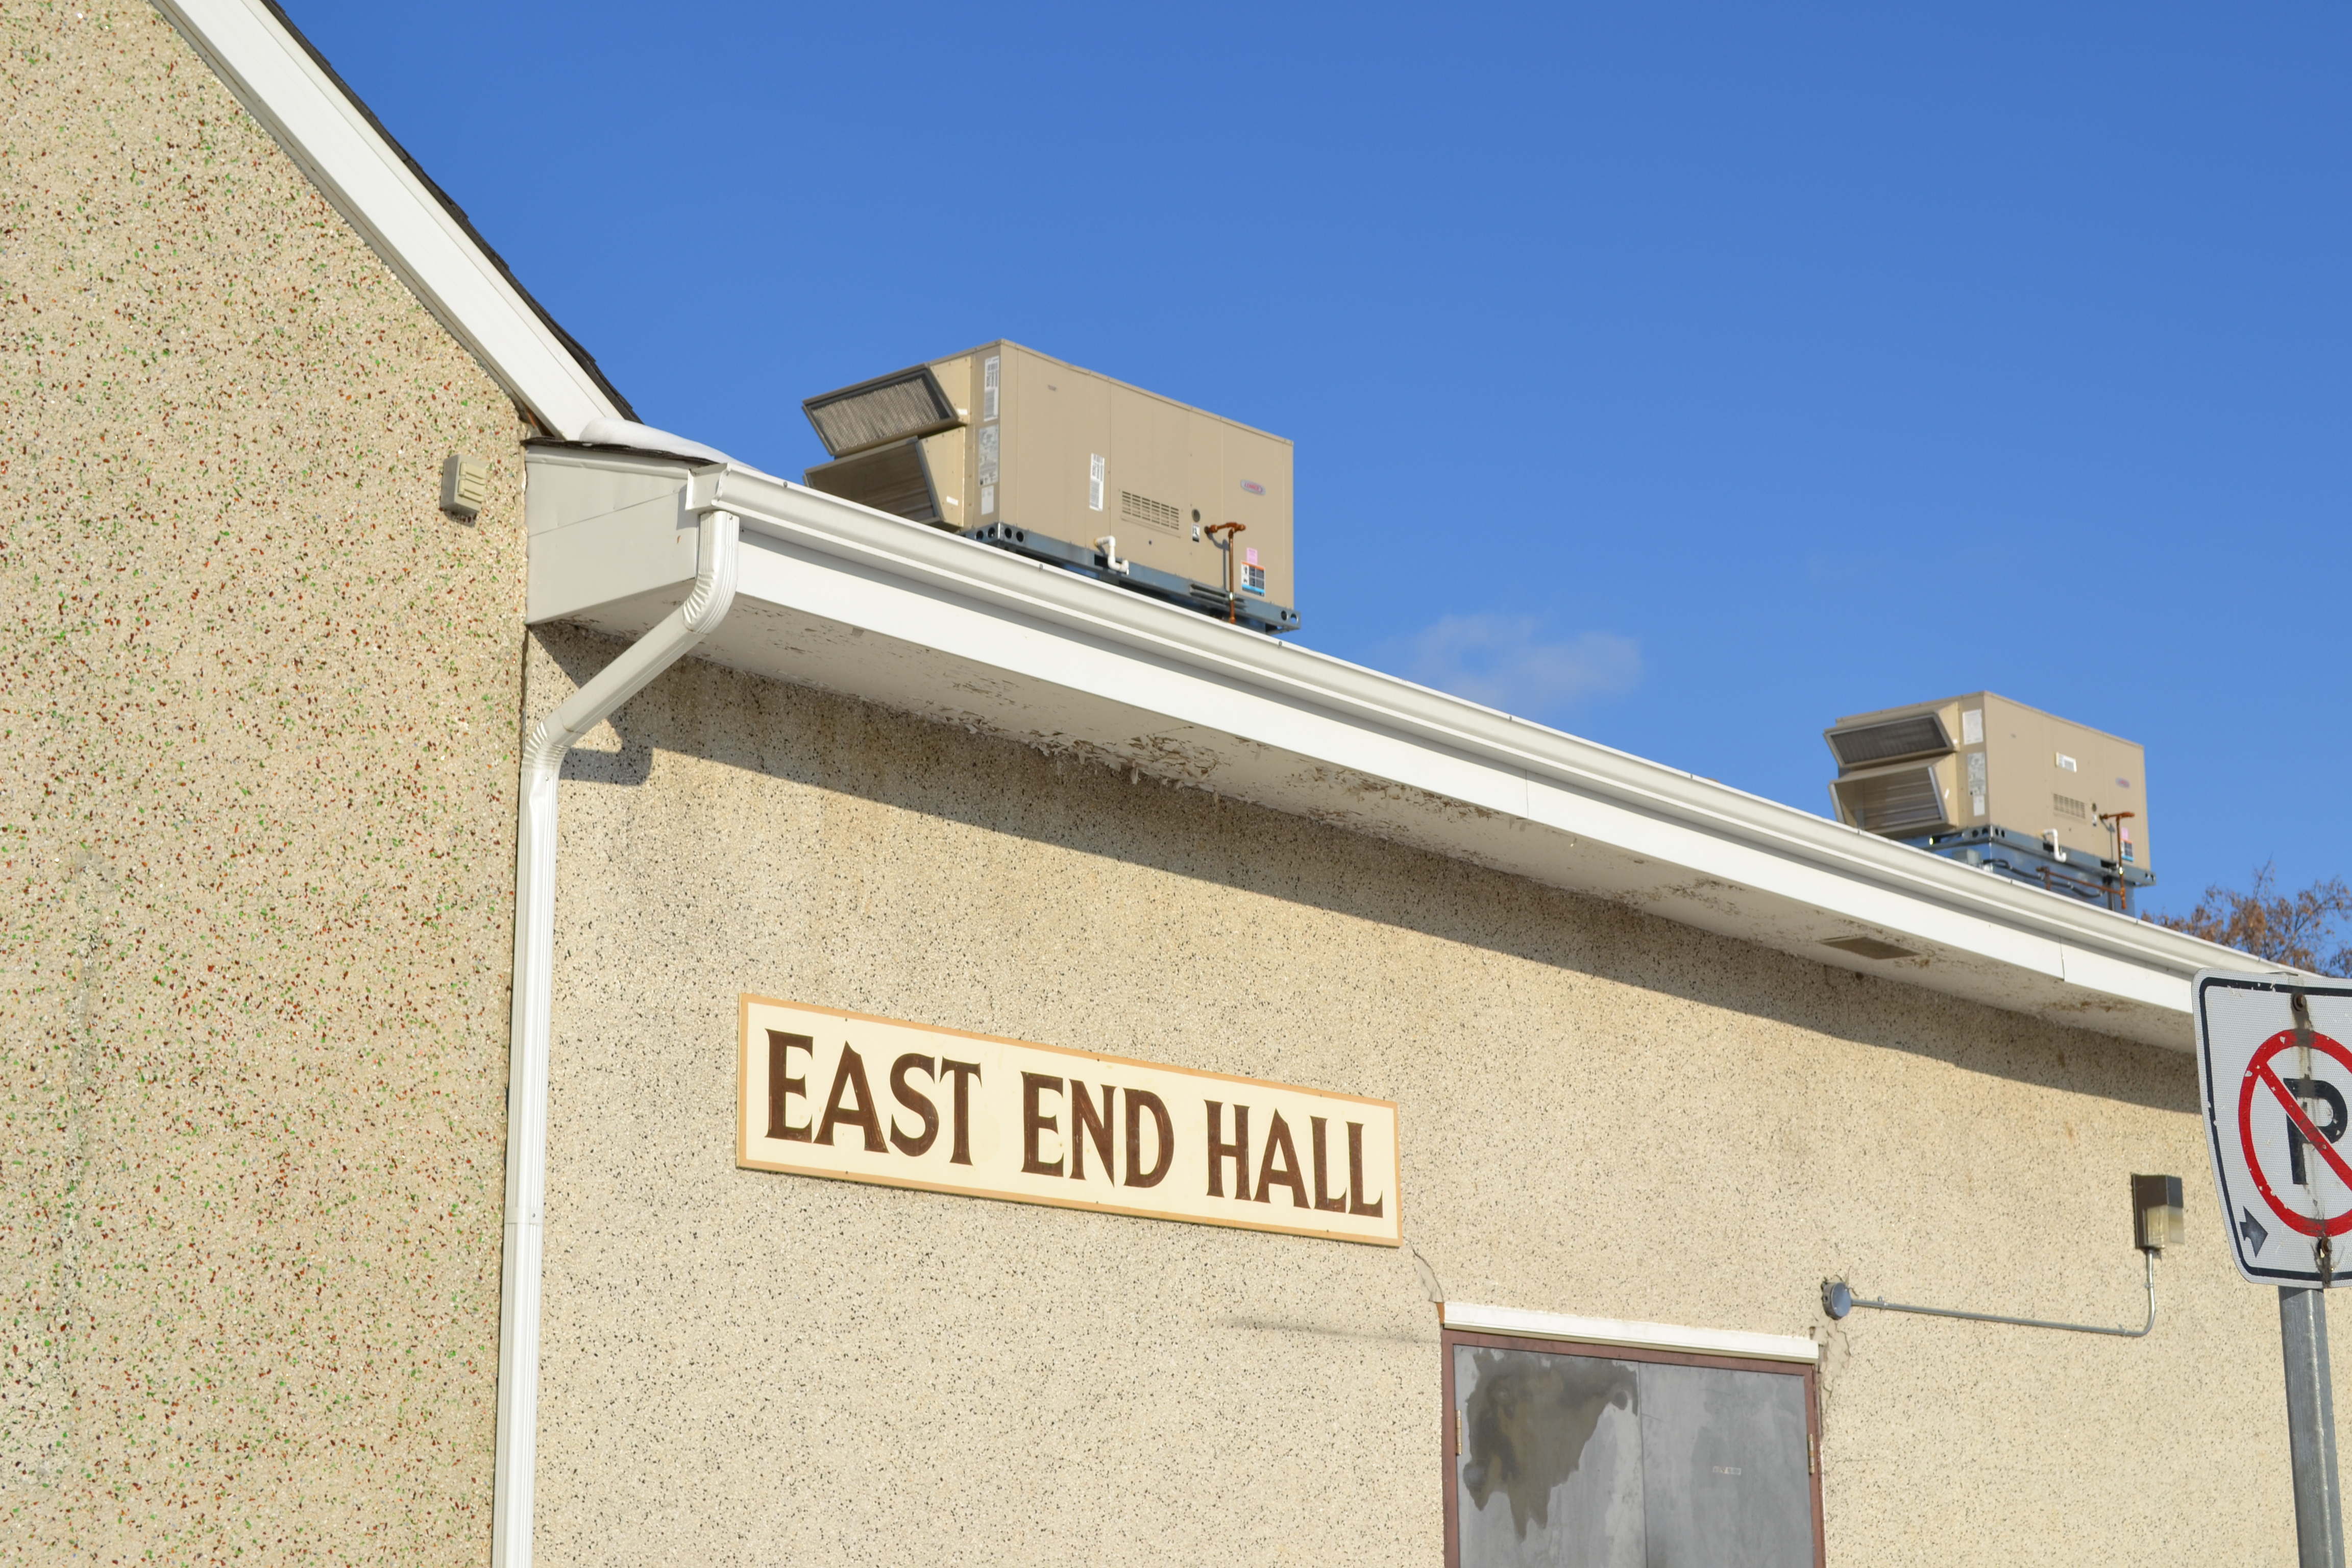 East End Hall  new eaves trough and 2 new air conditioners.jpg